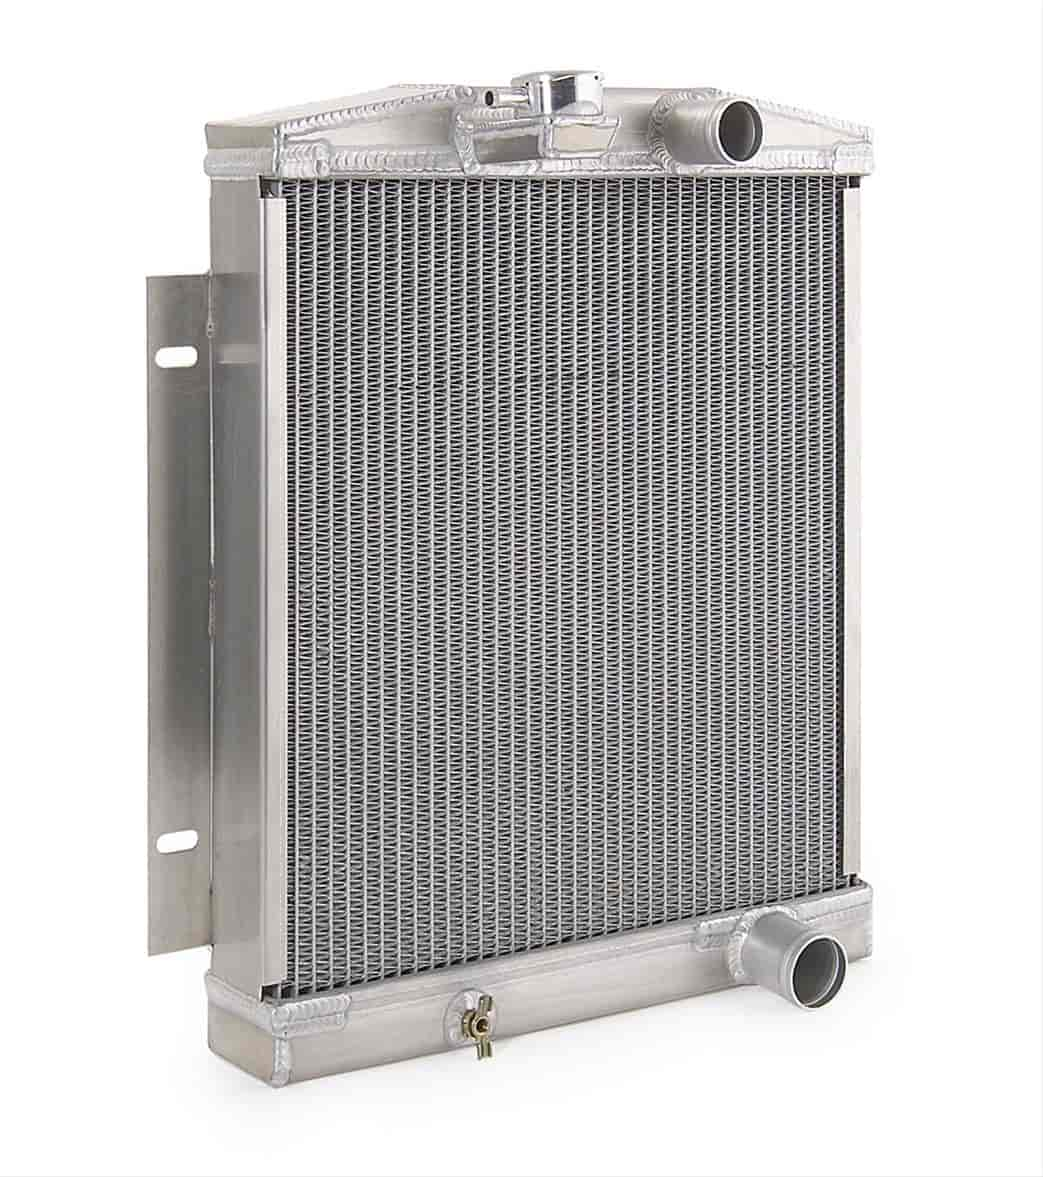 Be Cool Radiators 60020 - Be Cool Crossflow Series Aluminum Radiators